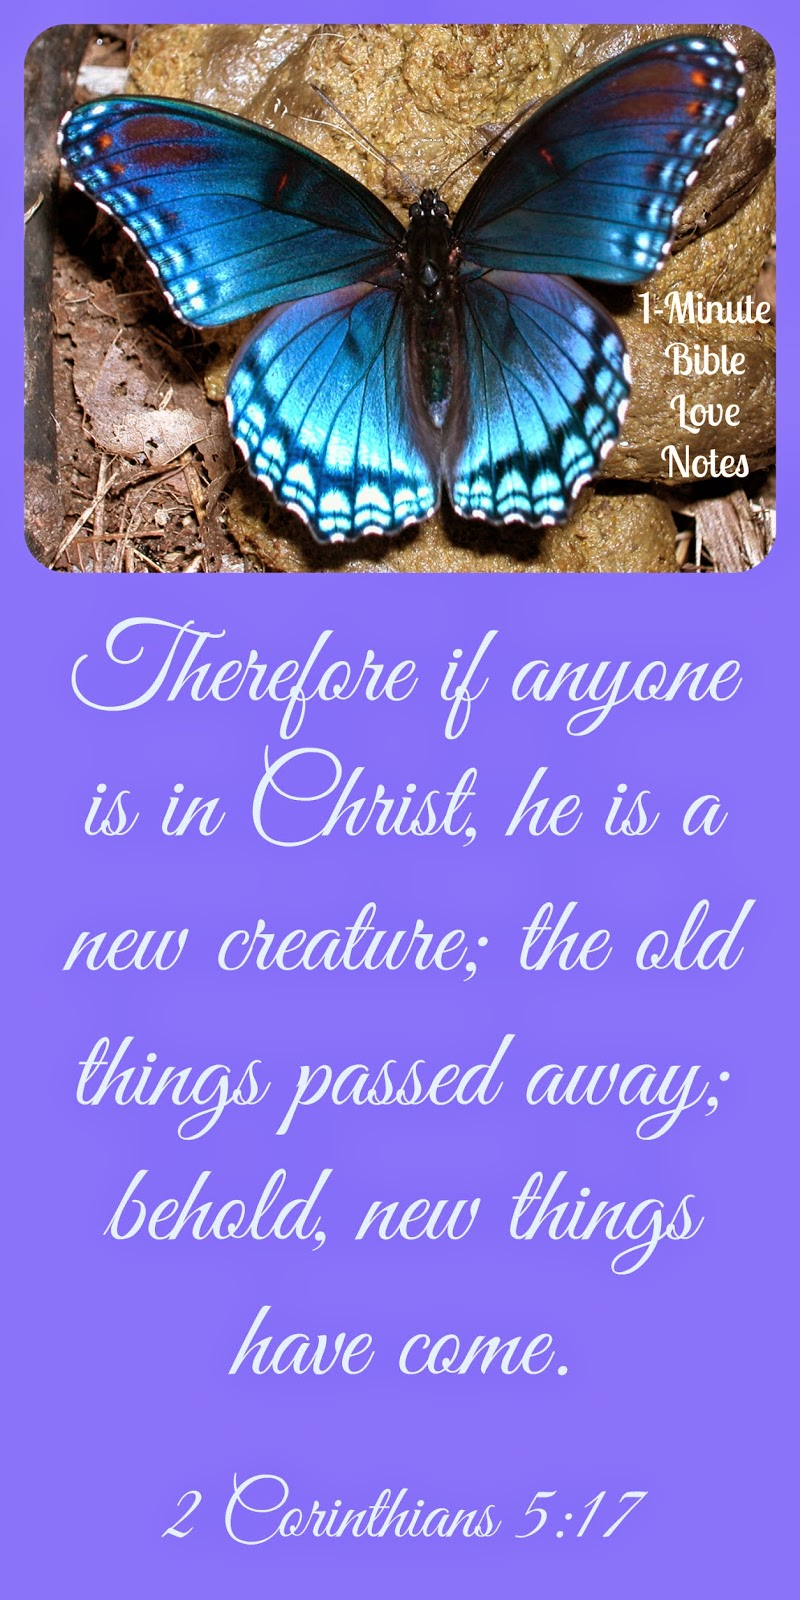 2 Corinthians 5:17, new creation in Christ